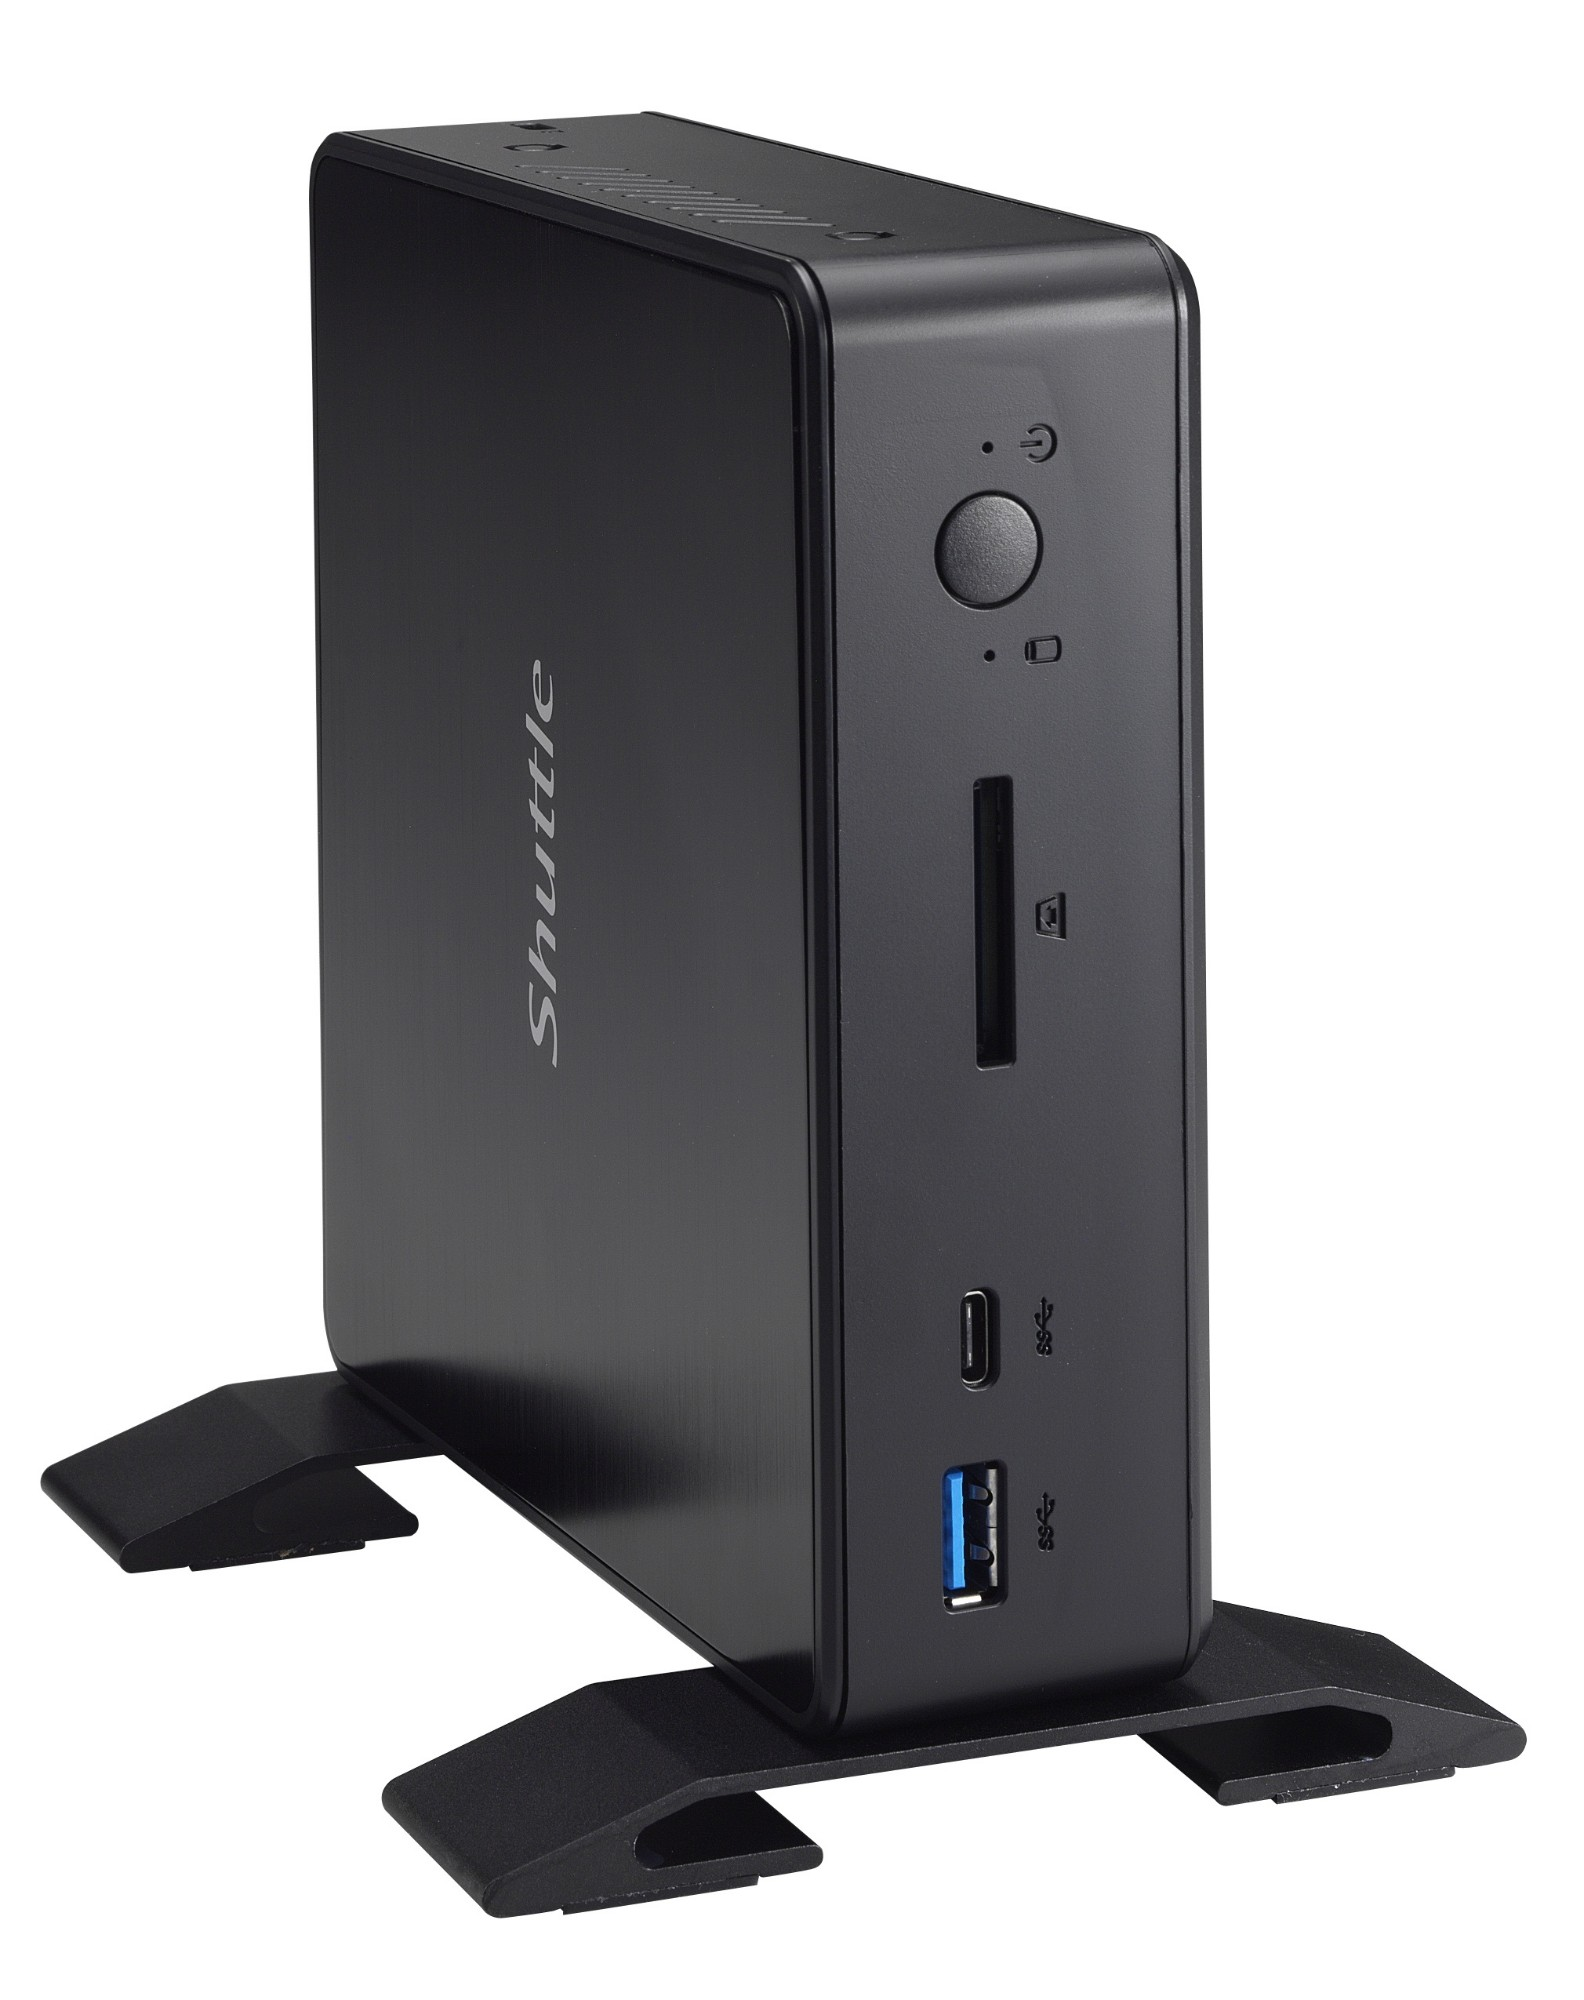 Shuttle XPC nano NC03U3 Intel SoC BGA 1356 2.40GHz i3-7100U Nettop Black PC/workstation barebone